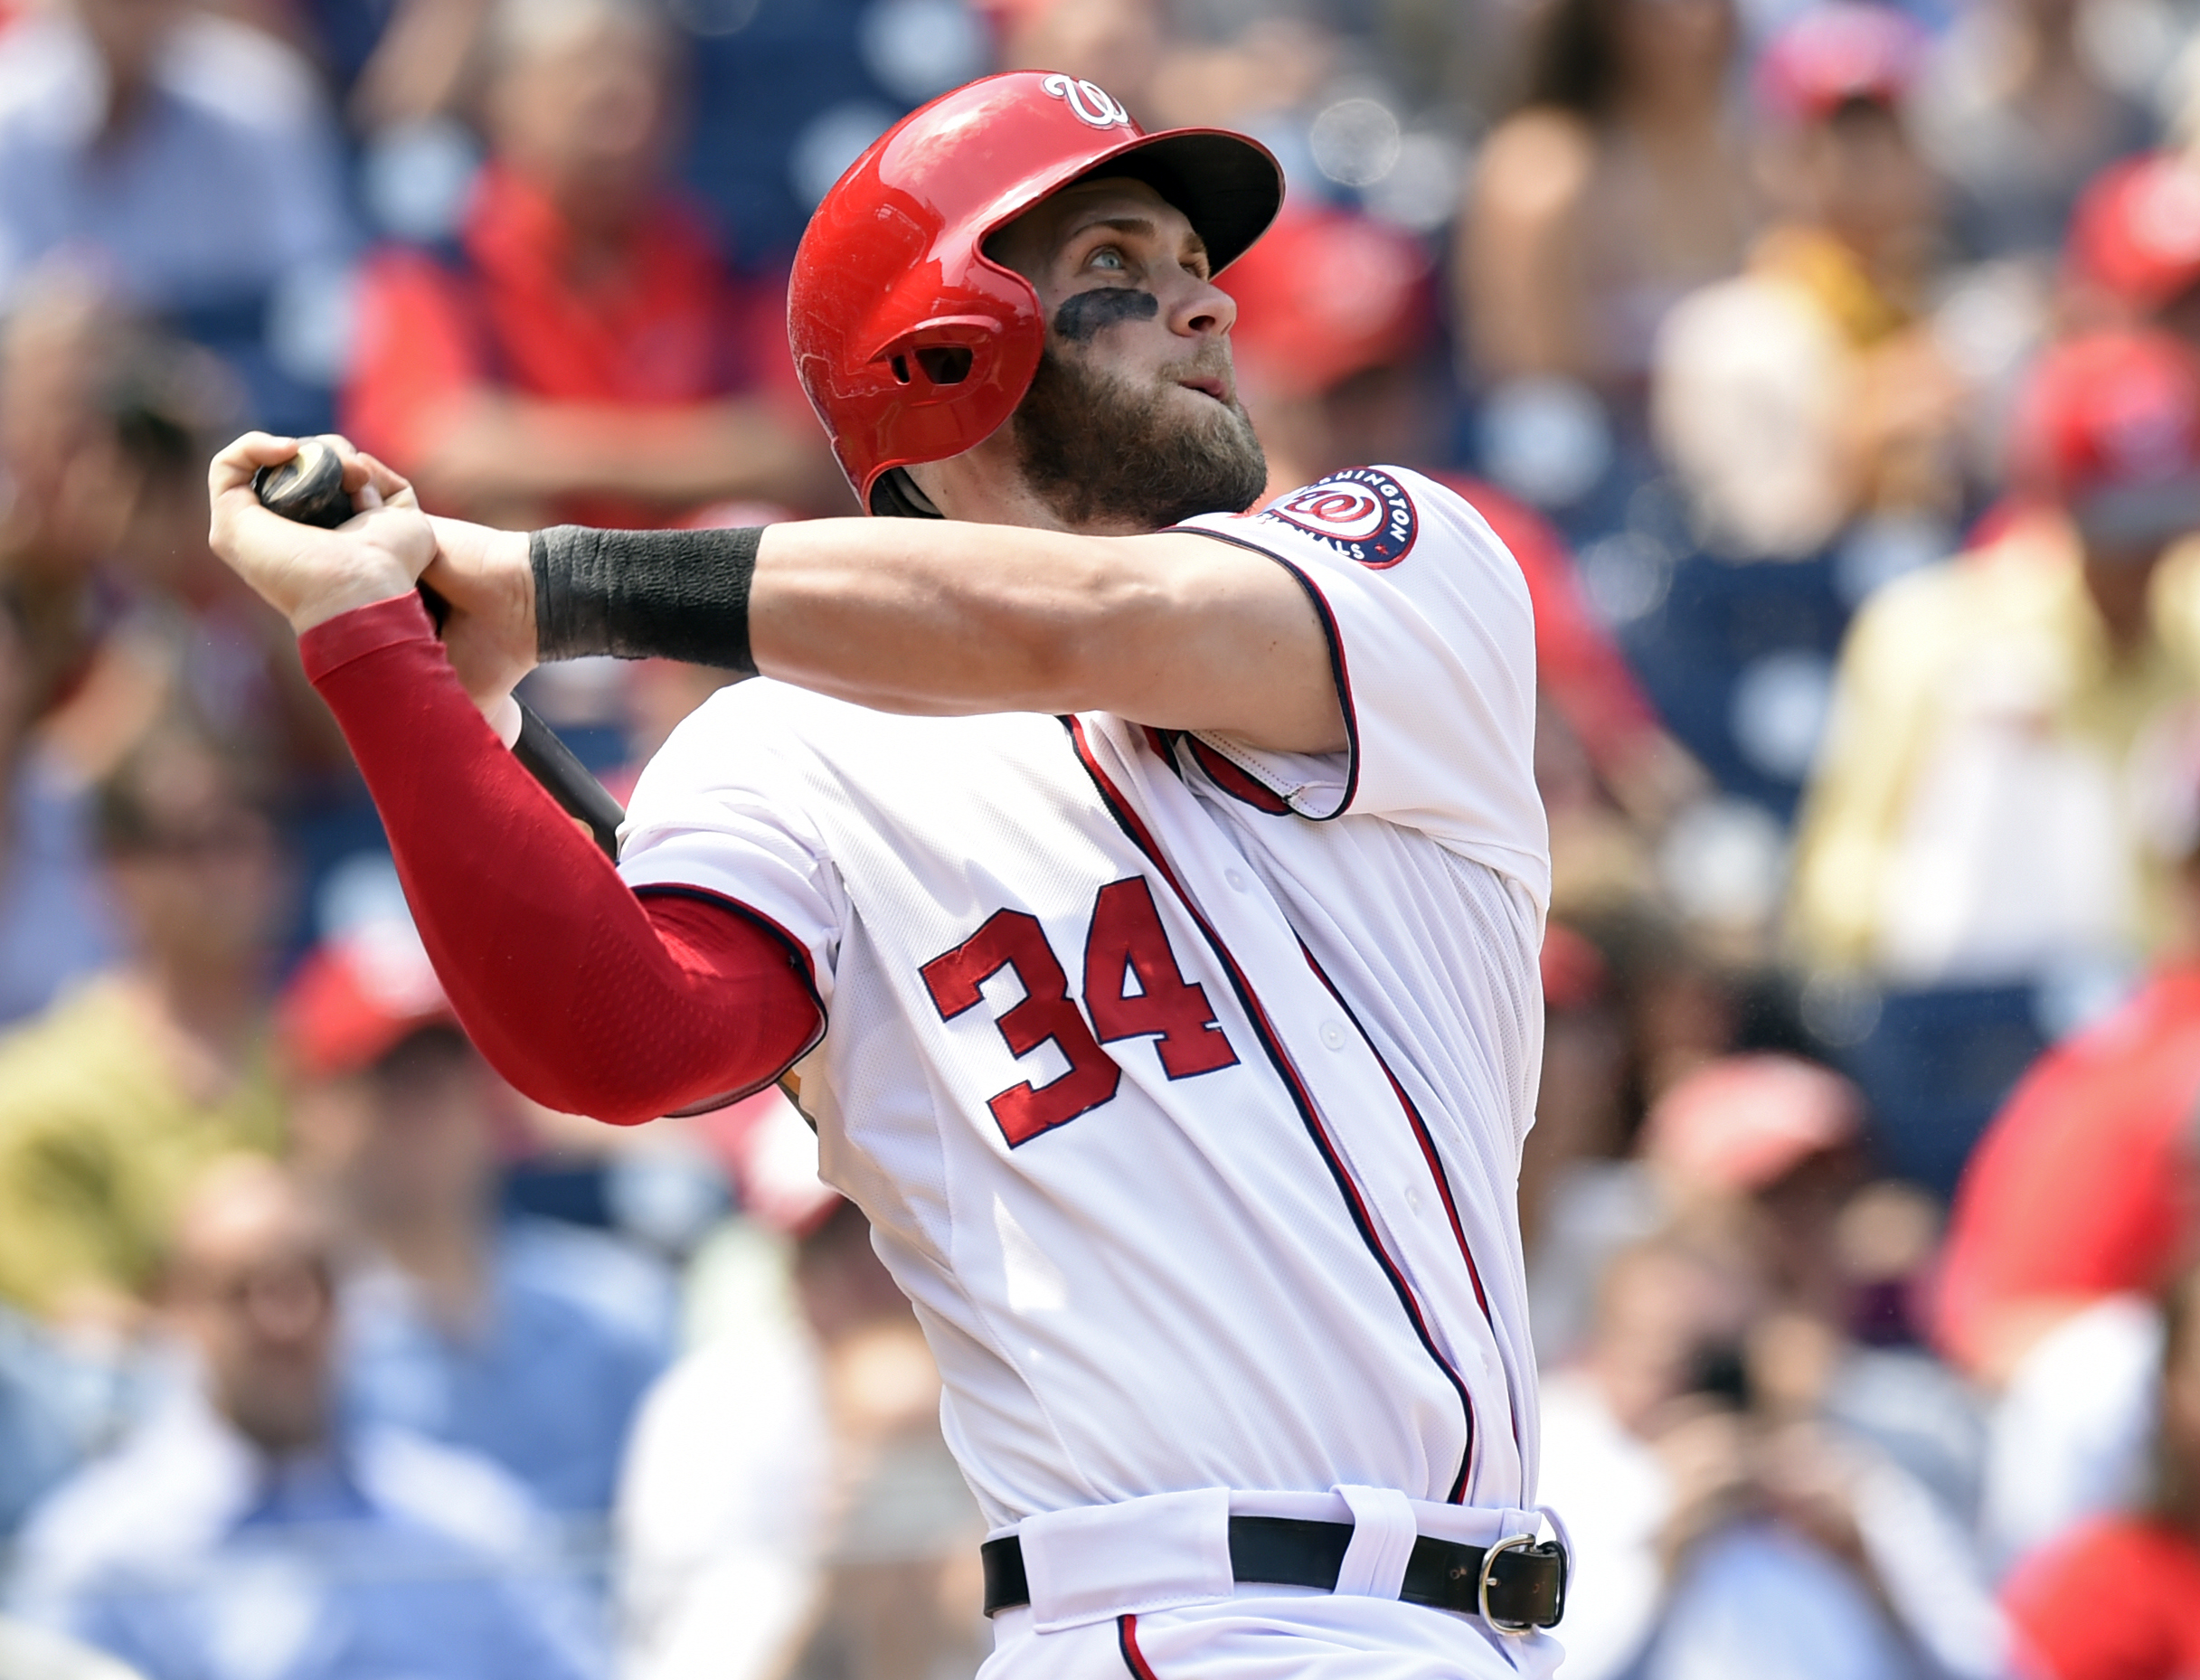 The Inevitable? Bryce Harper in Pinstripes